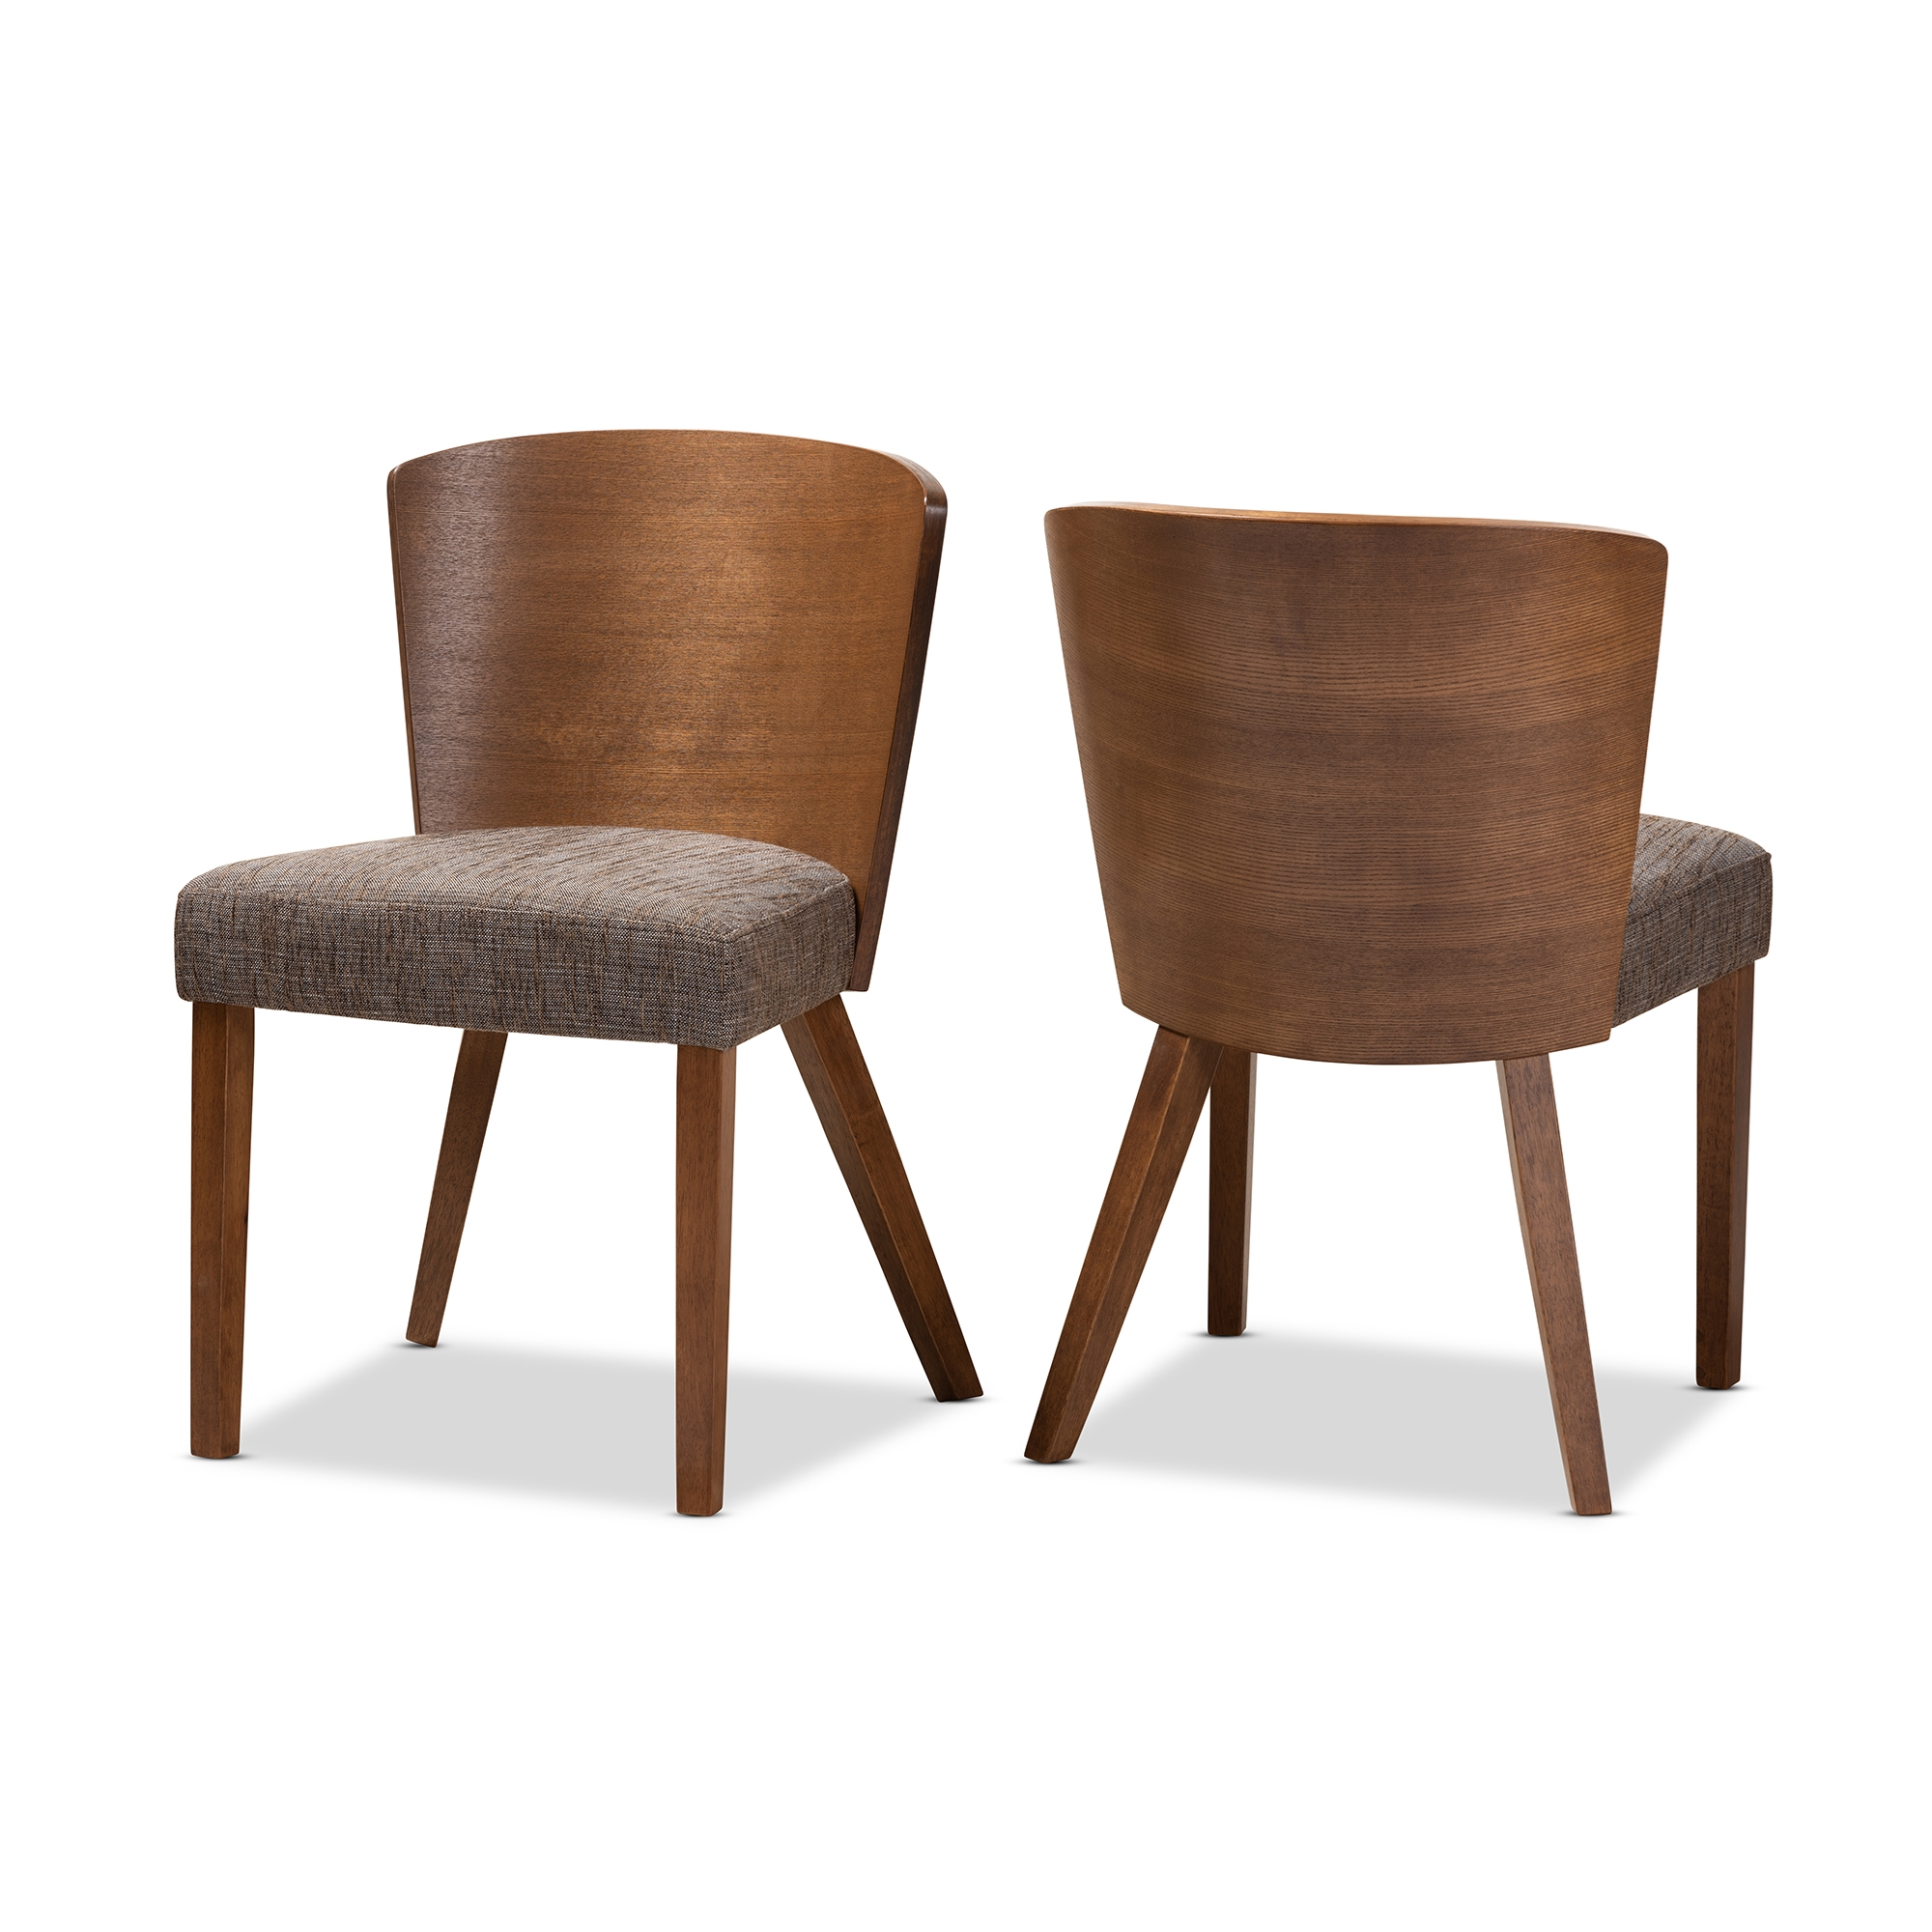 Sparrow Brown Wood Modern Dining Chair Affordable Modern Furniture